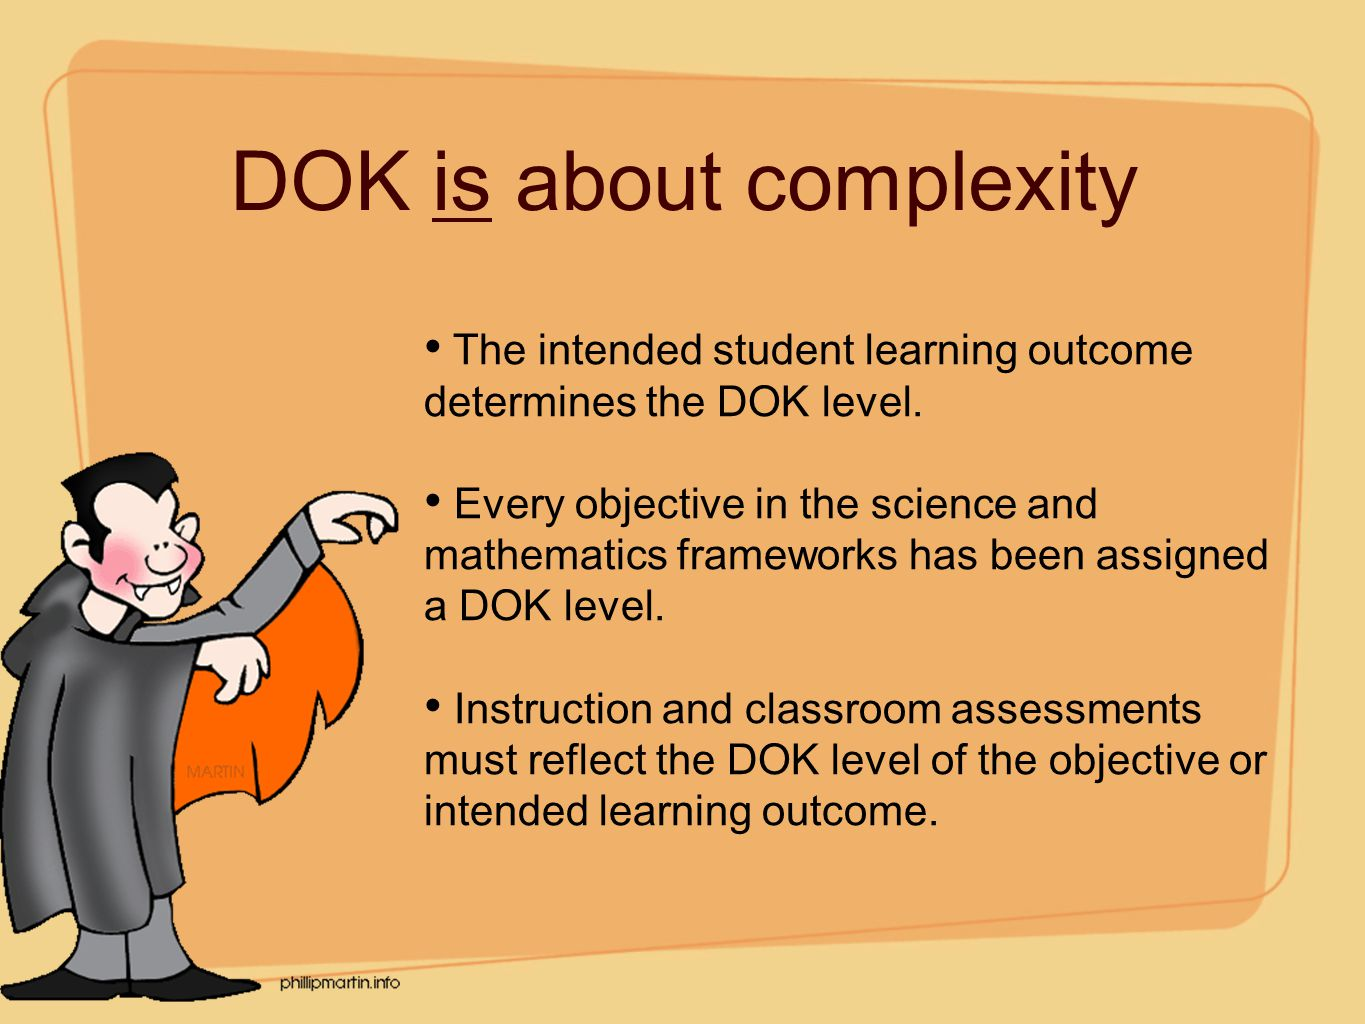 DOK is about complexity